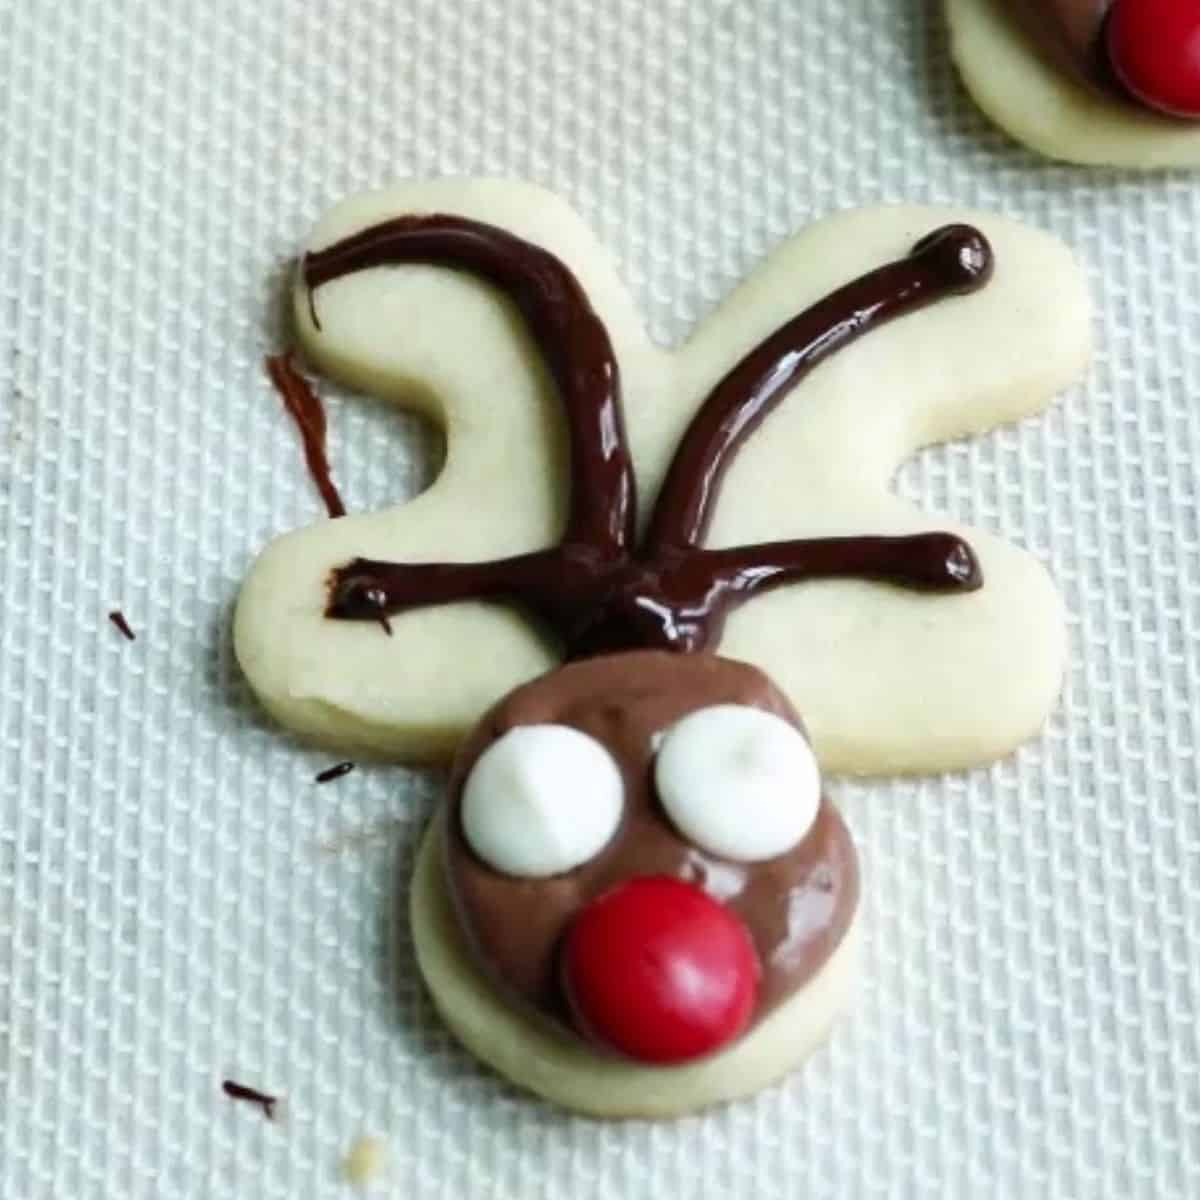 Gingerbread man cookie decorated to look like a reindeer.